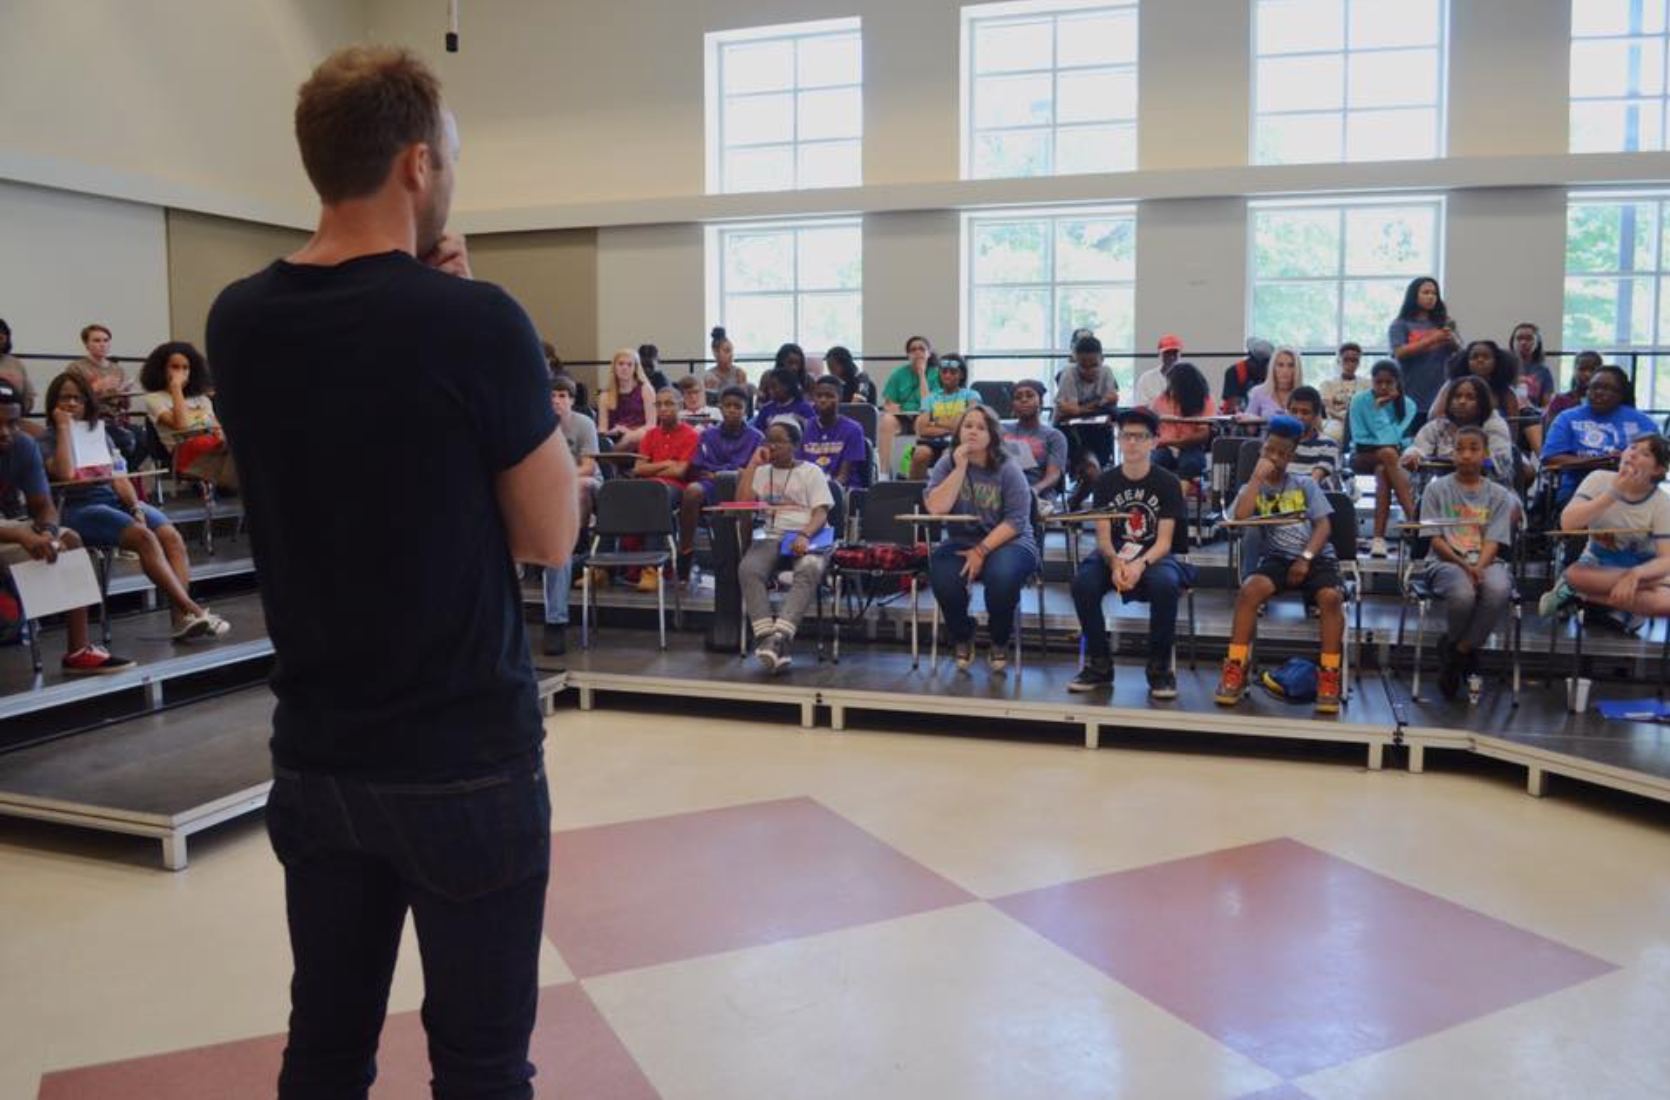 David Claassen of BMI presented to our campers.